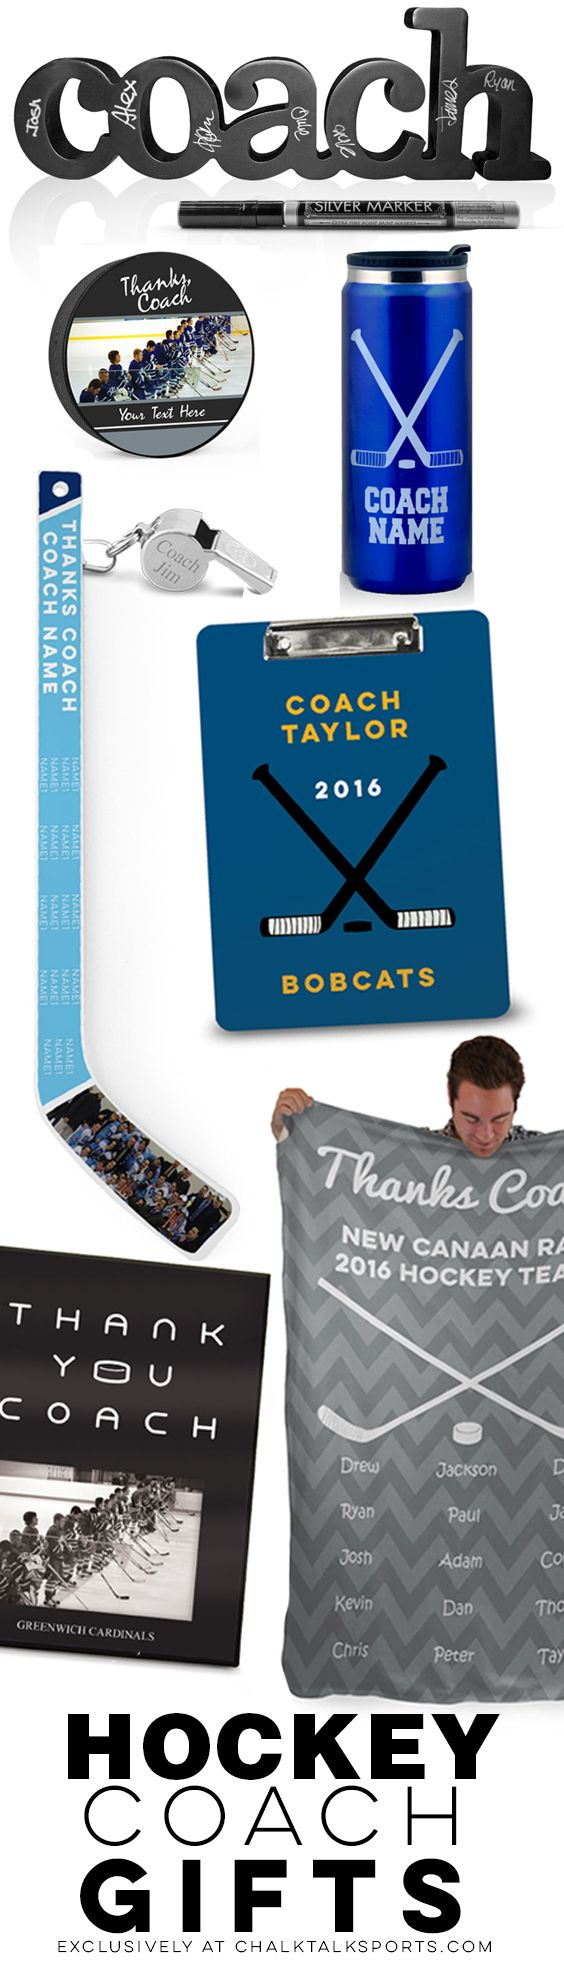 """We've got everything you need to say """"Thanks Coach!"""" for a great hockey season! Our customization options make great personalized gifts!"""